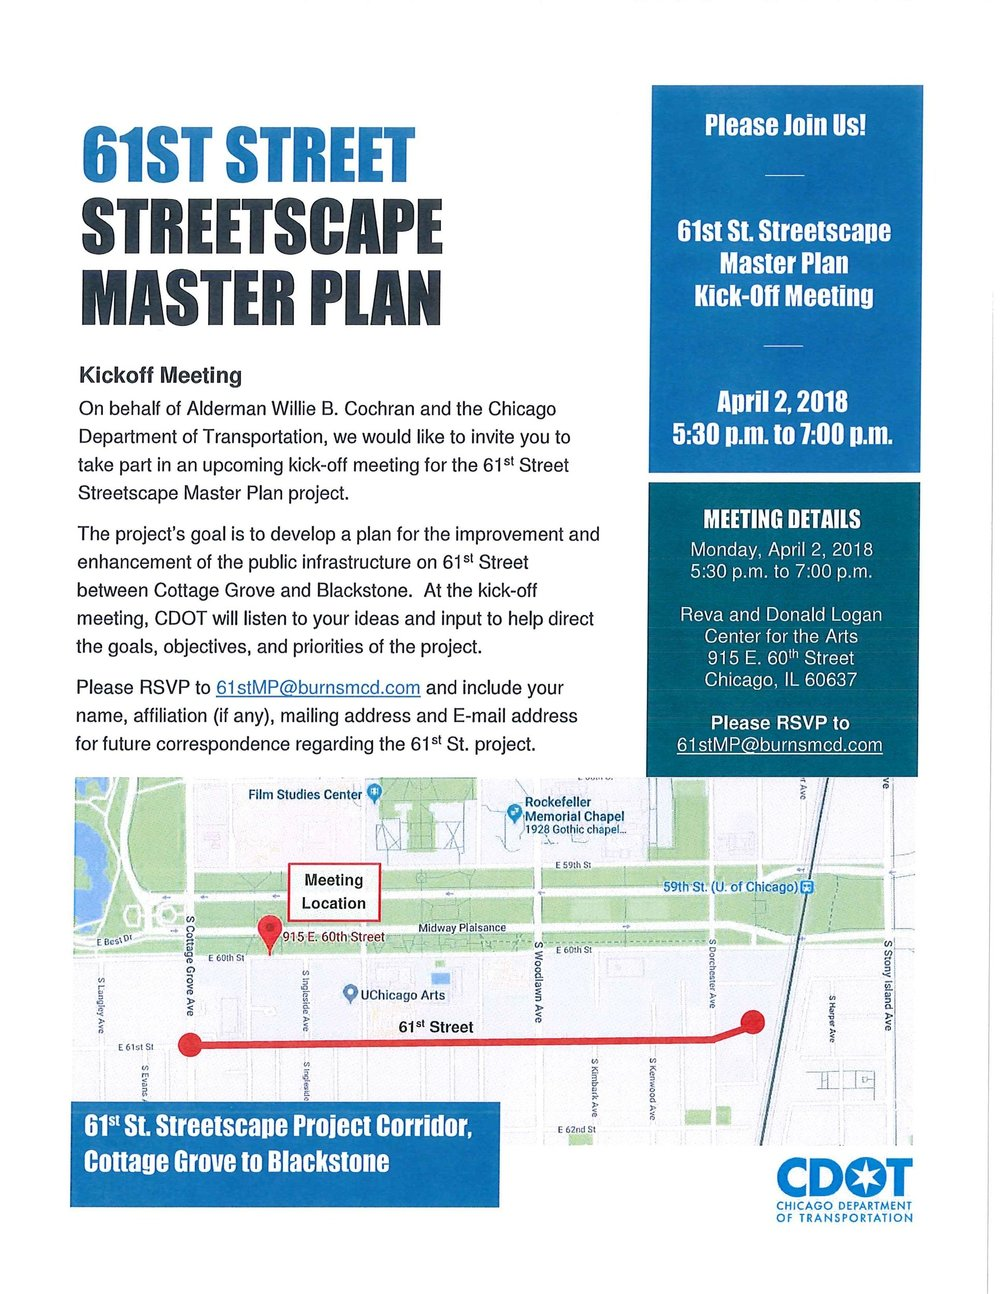 61st Street meeting Flyer.jpg